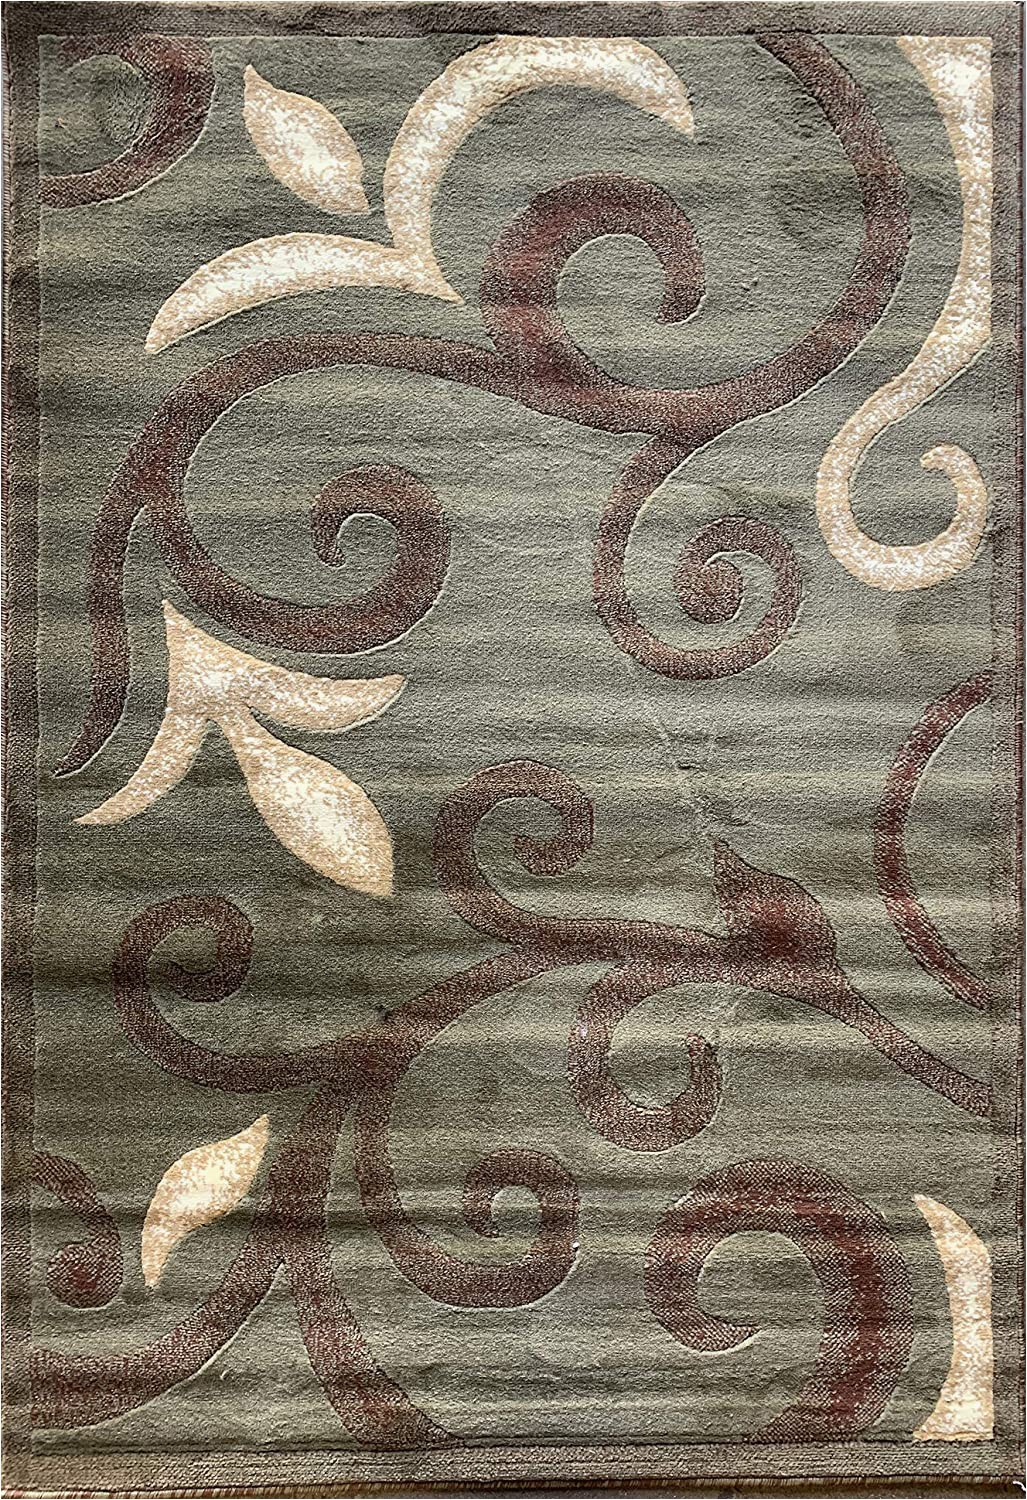 Sage Green and Brown area Rug Emirates Modern area Rug Contemporary Sage Green & Brown